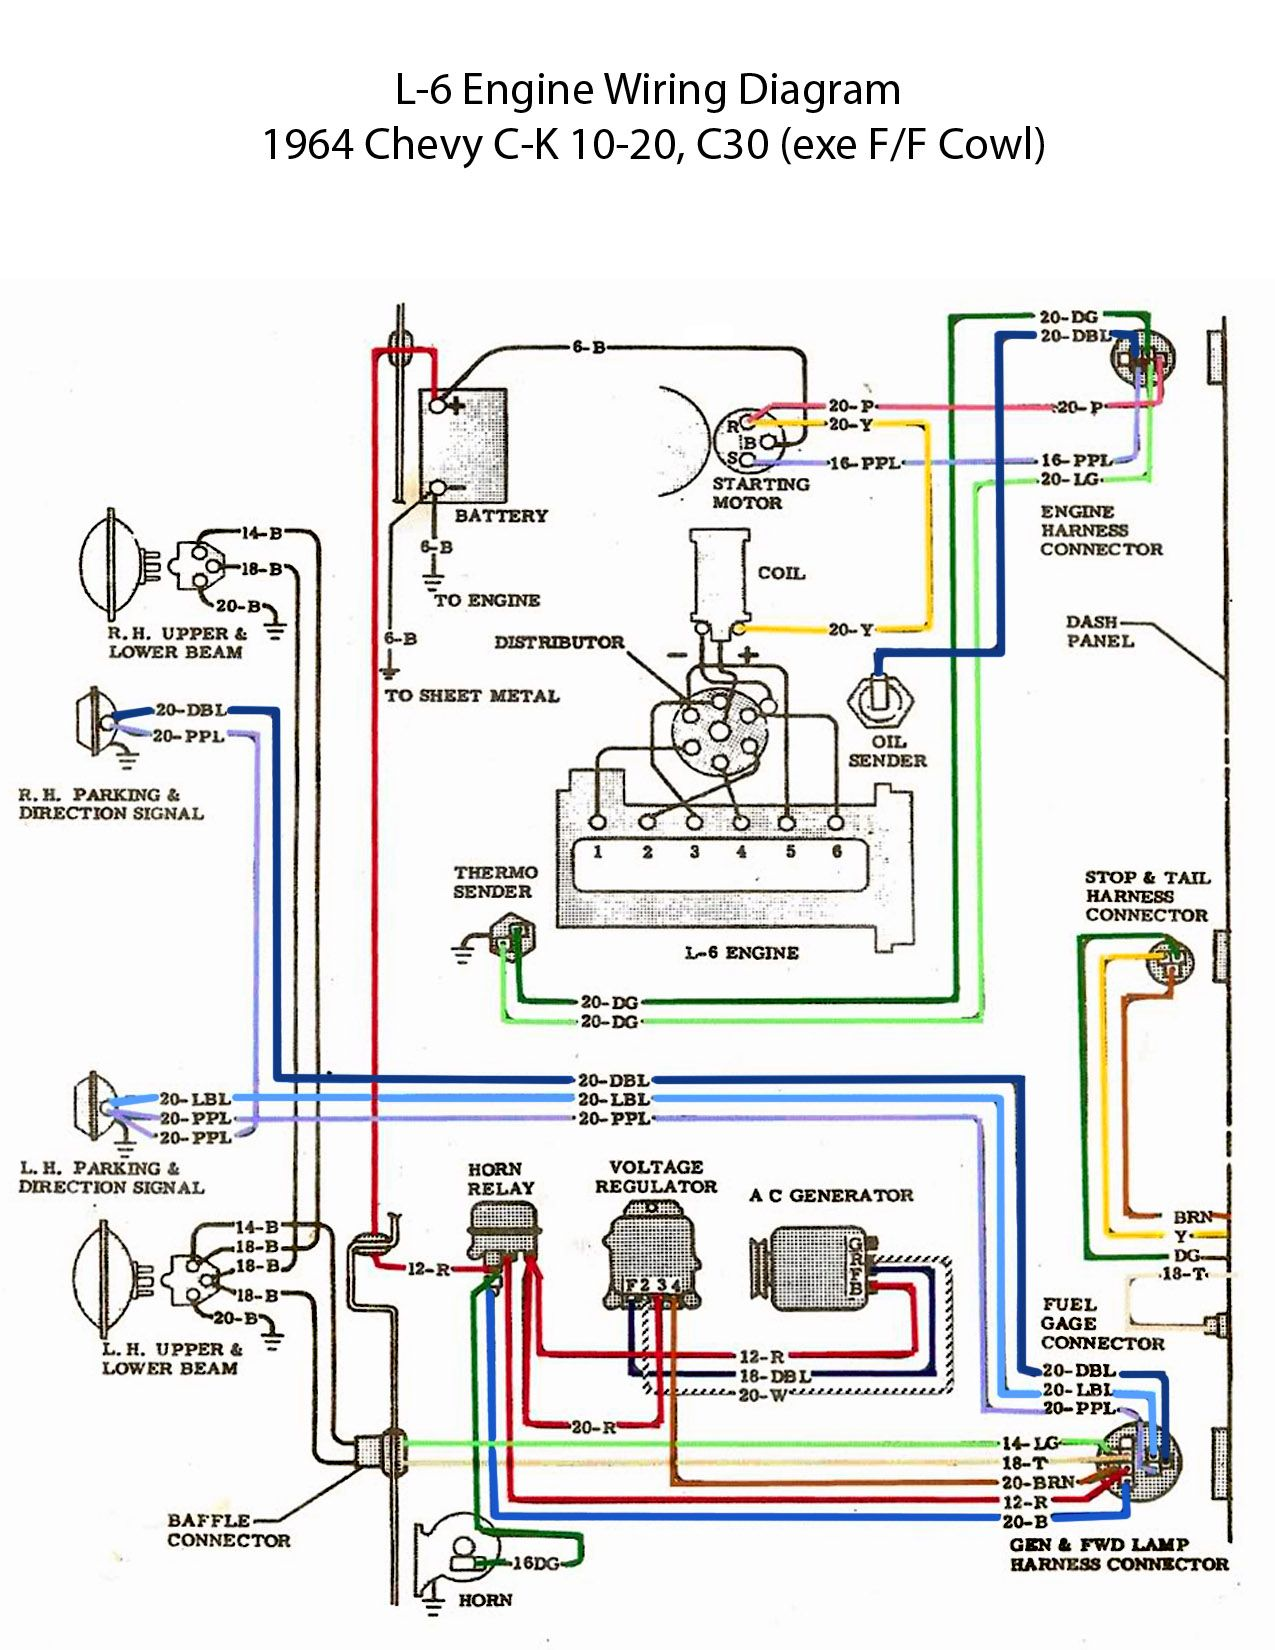 electric l 6 engine wiring diagram \u002760s chevy c10 wiring K20 Wiring Harness